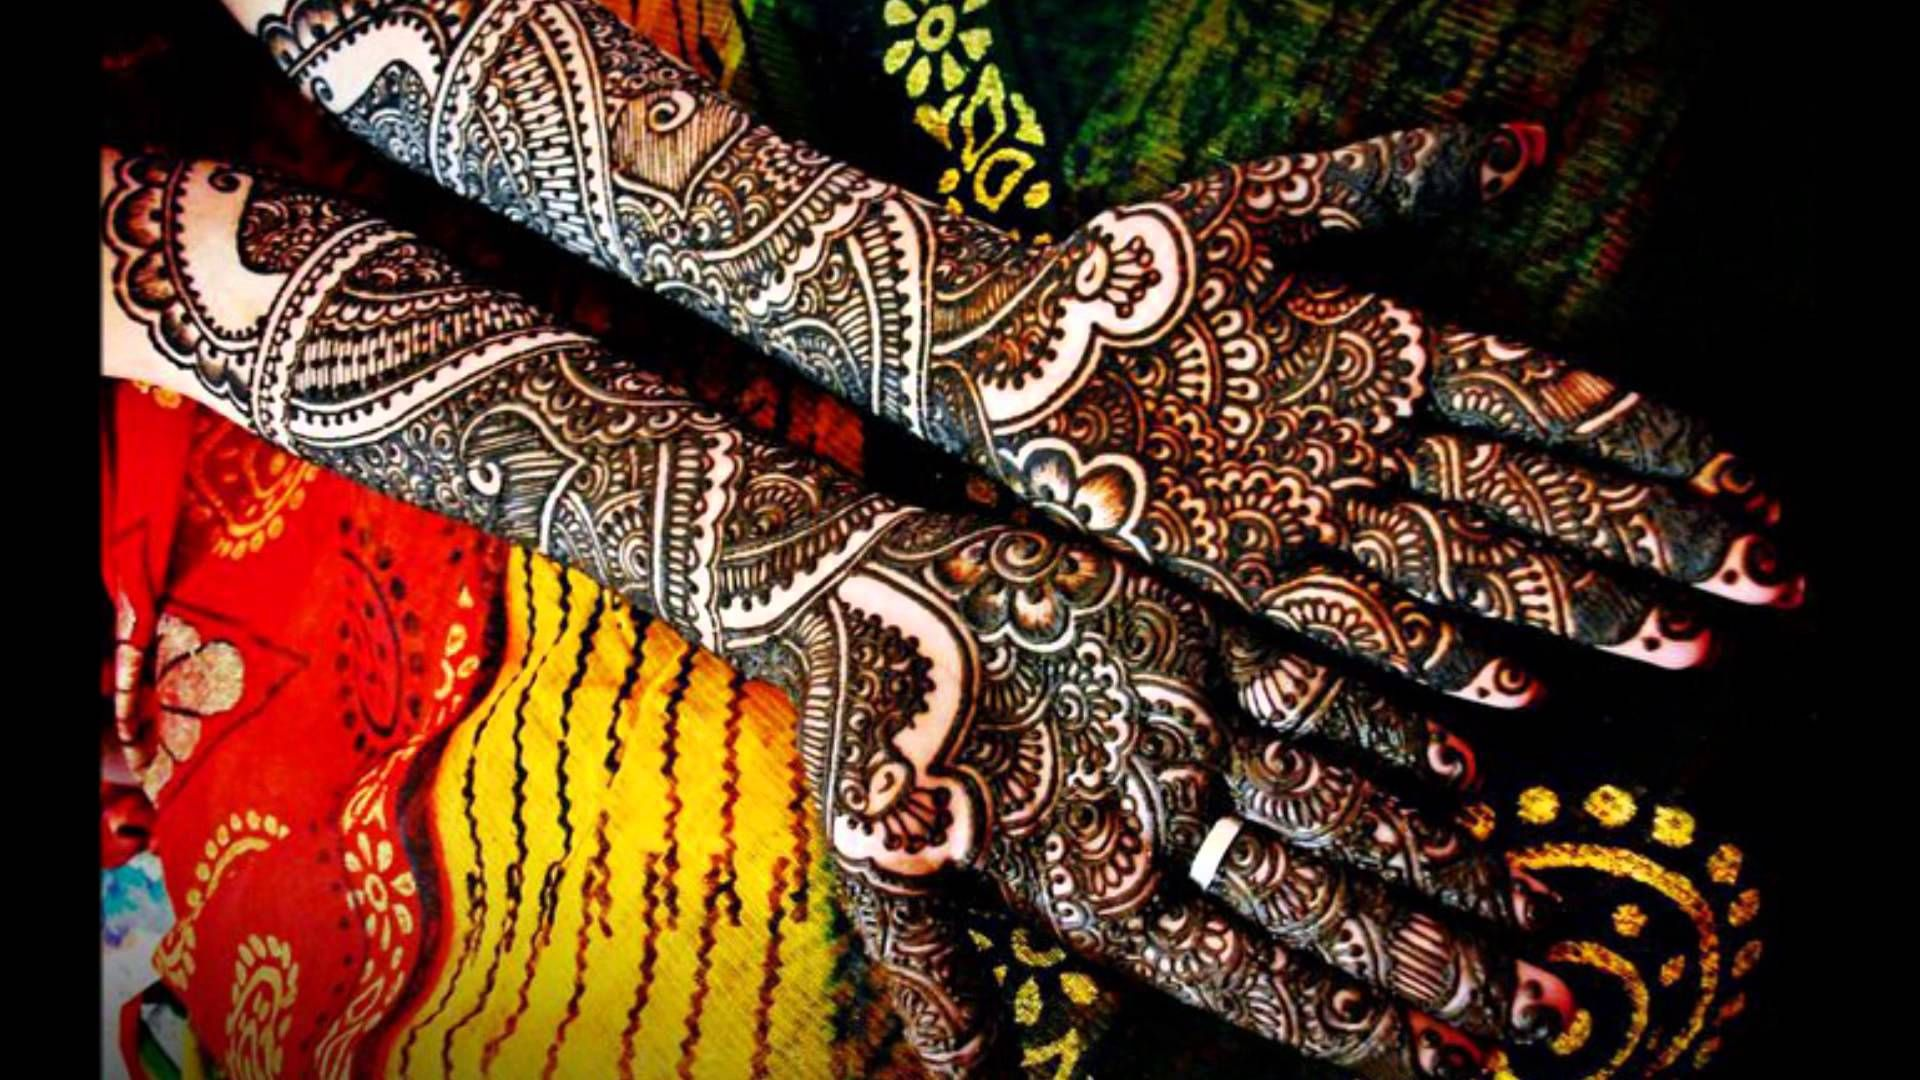 Image Result For Indian Culture Hd Wallpaper Restaurant Wallpapers